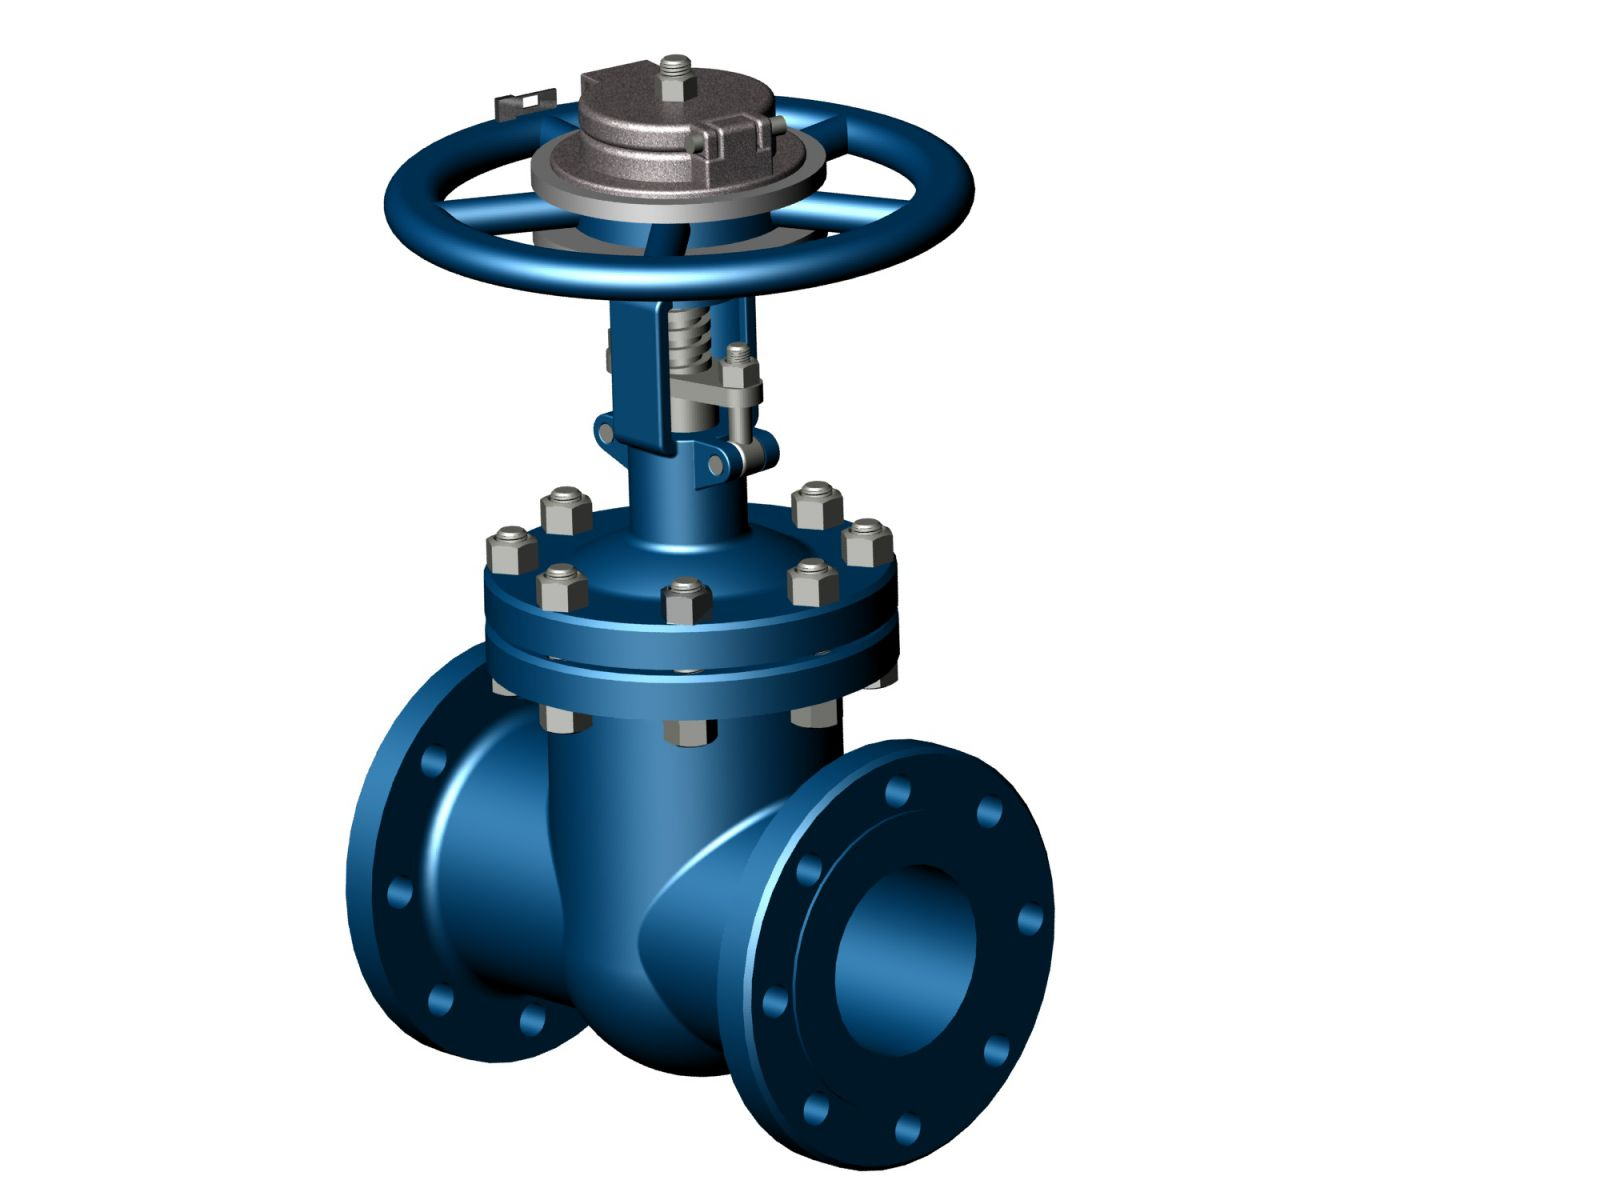 The Impacts of the Foreign Valve Products on the Domestic Valve Industry